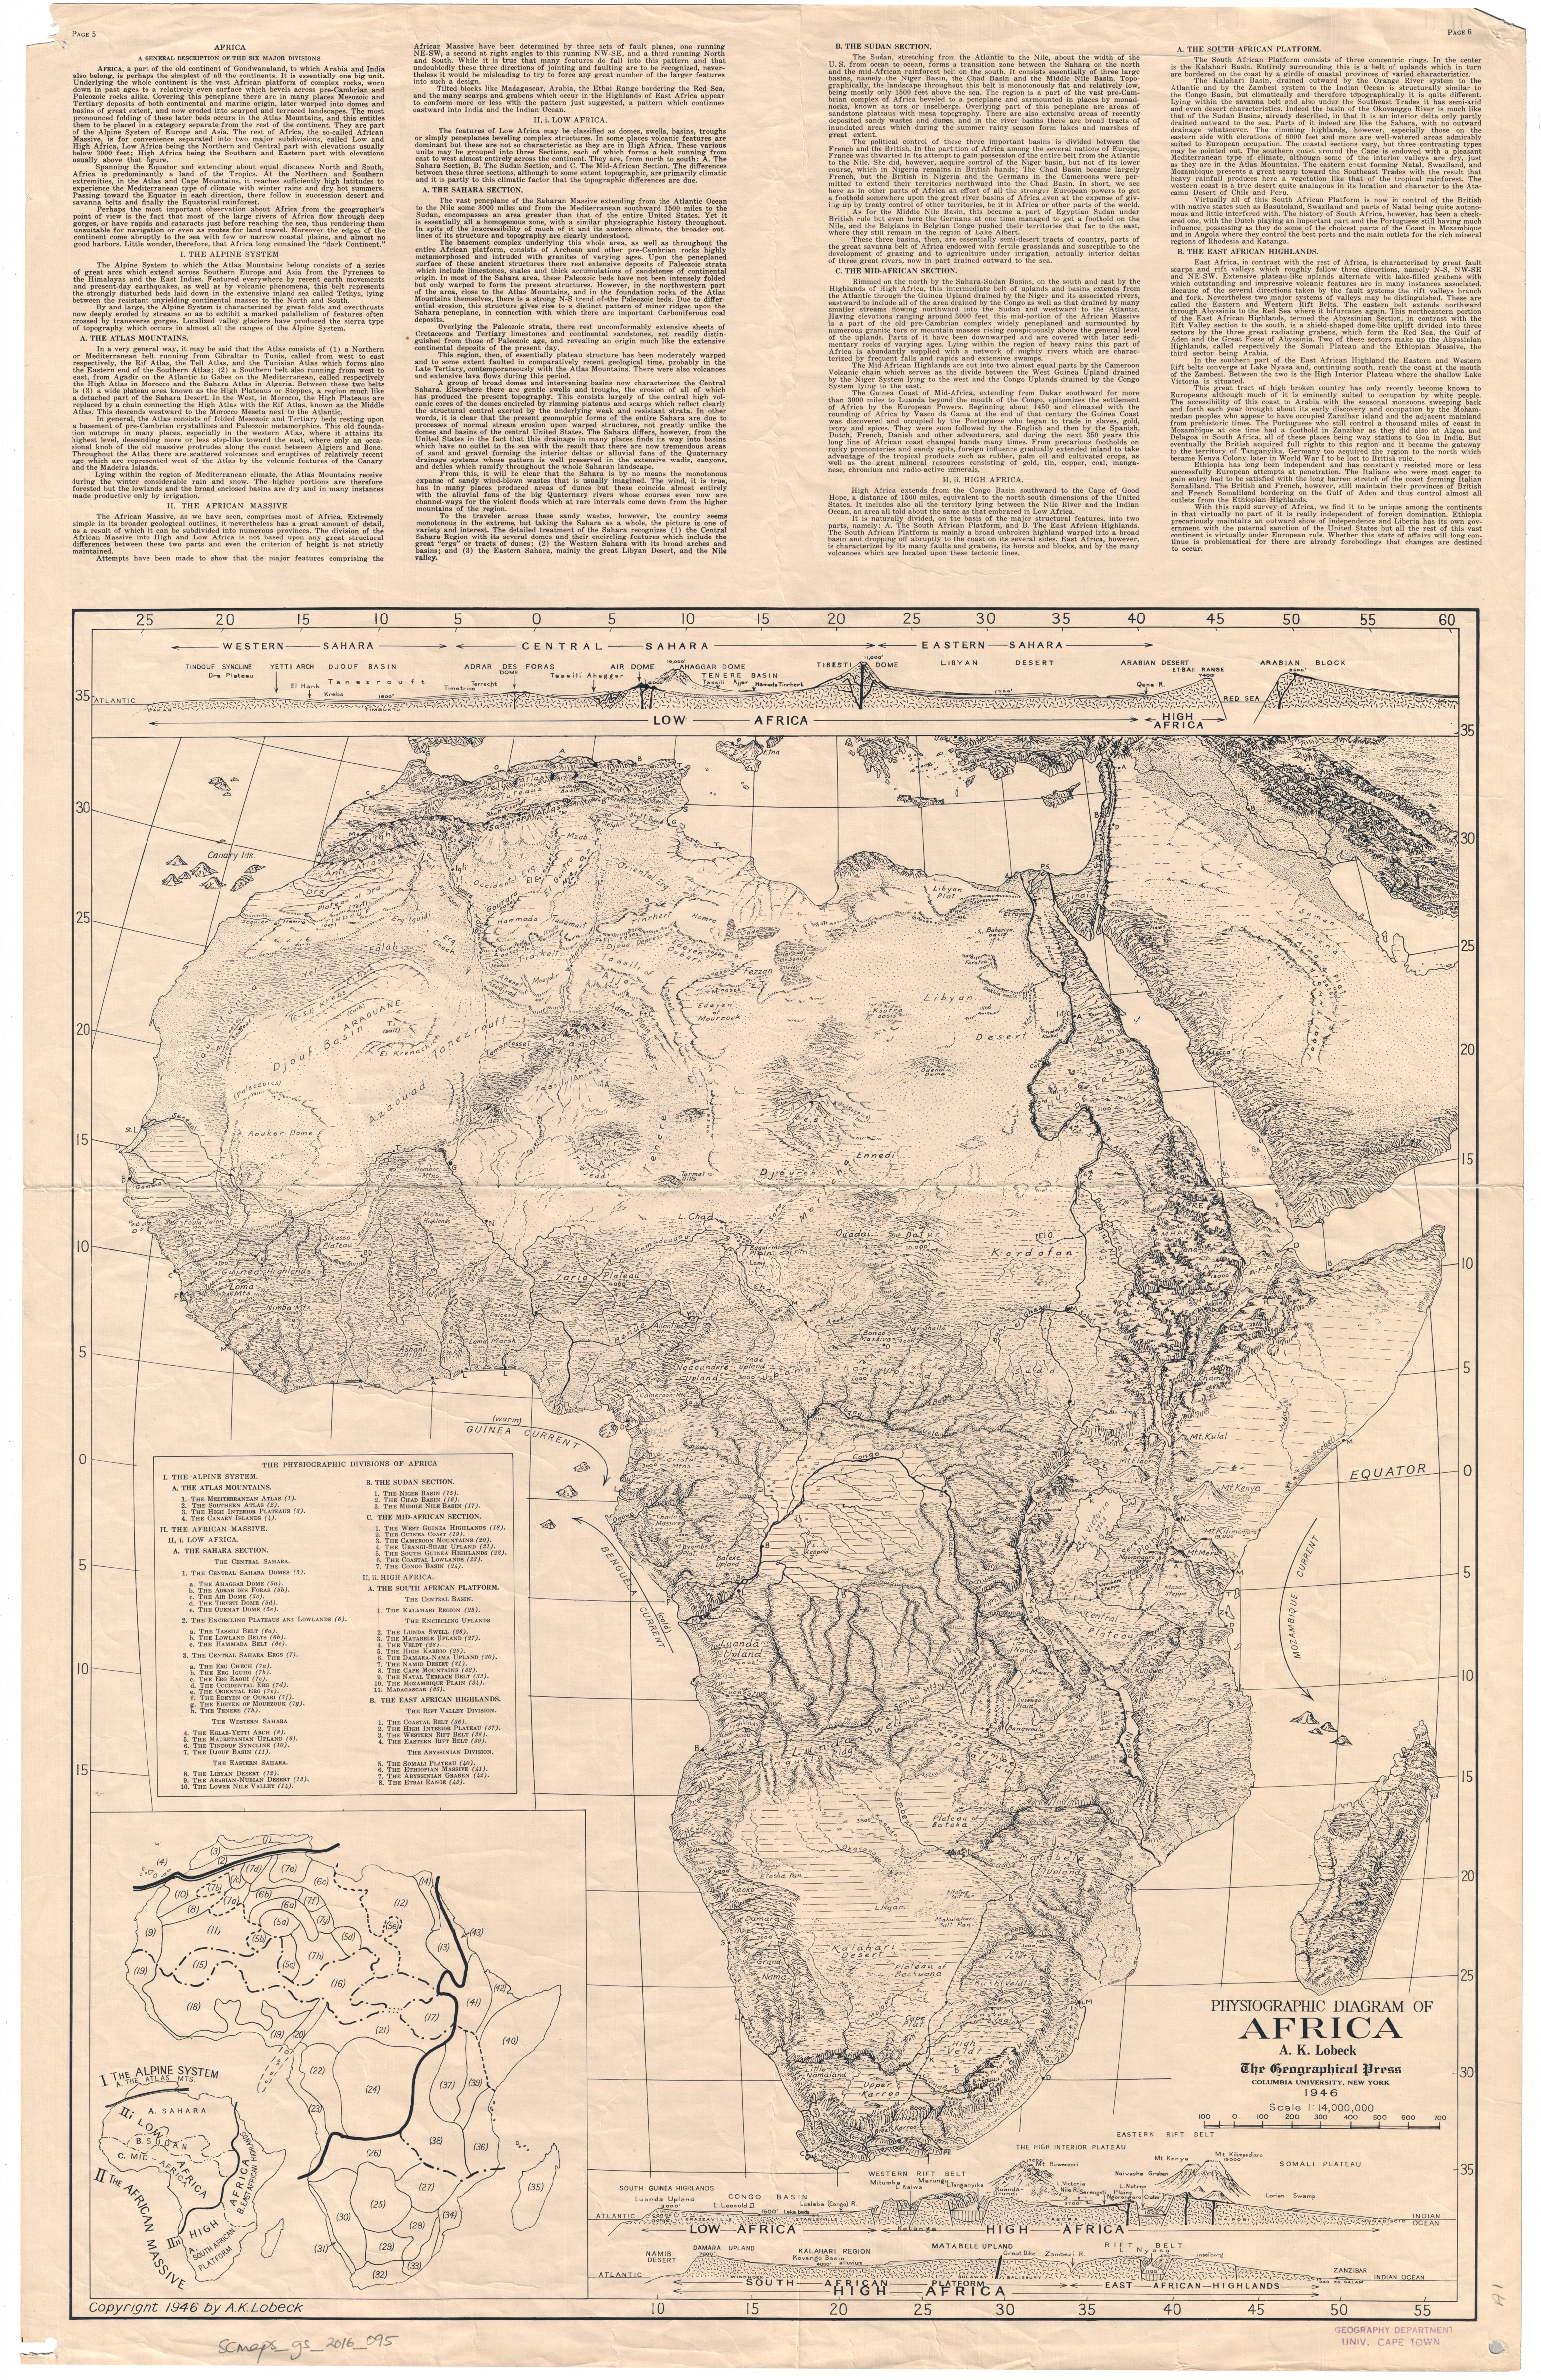 Physiographic diagram of africa uct libraries digital collections physiographic diagram of africa ccuart Image collections